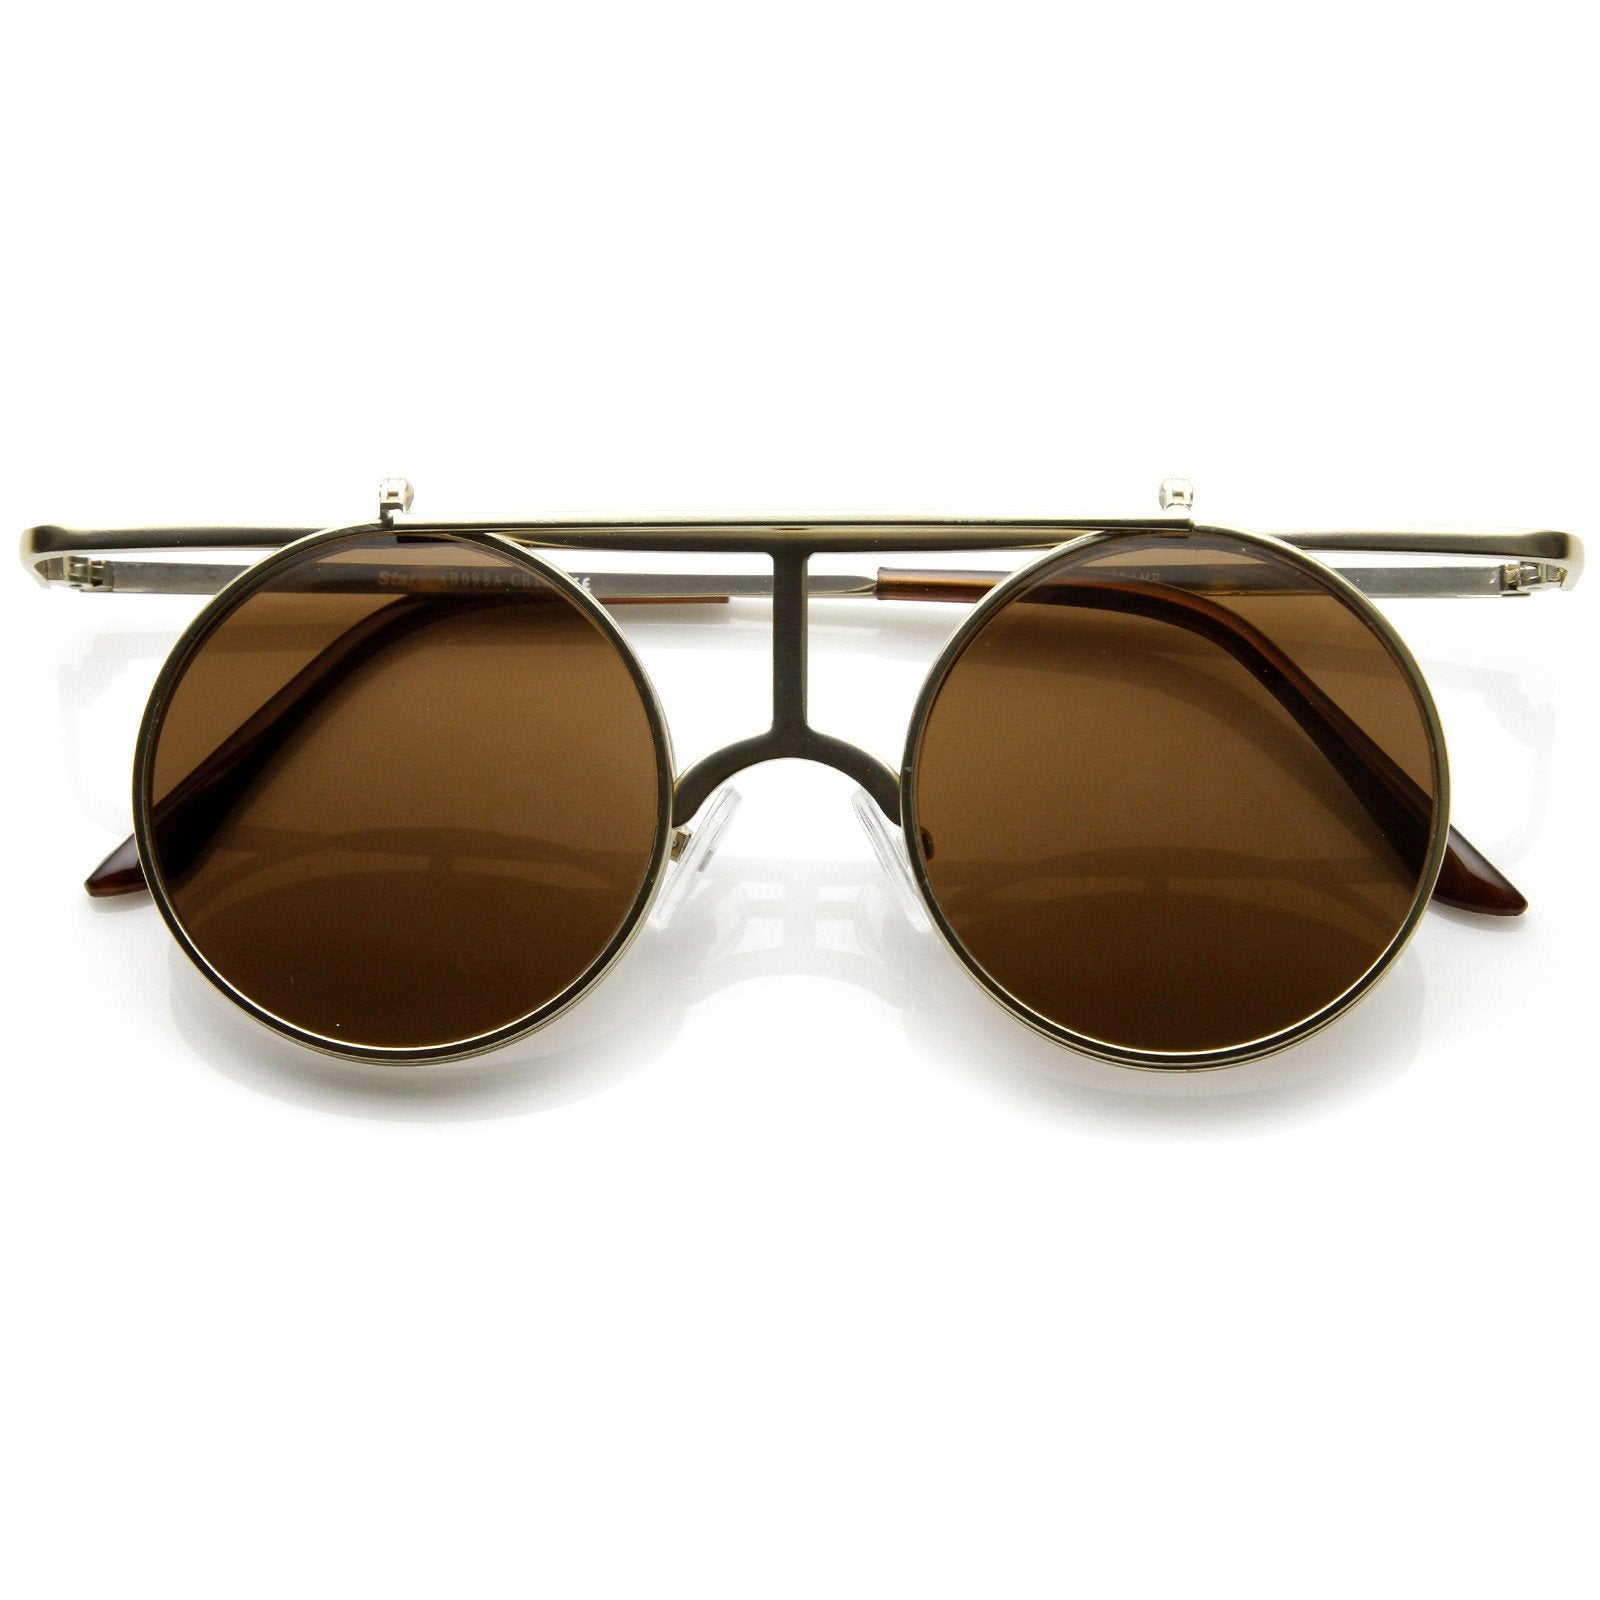 fd8eb8bf433 Steampunk Vintage Inspired Crossbar Flip Up Metal Sunglasses 8972